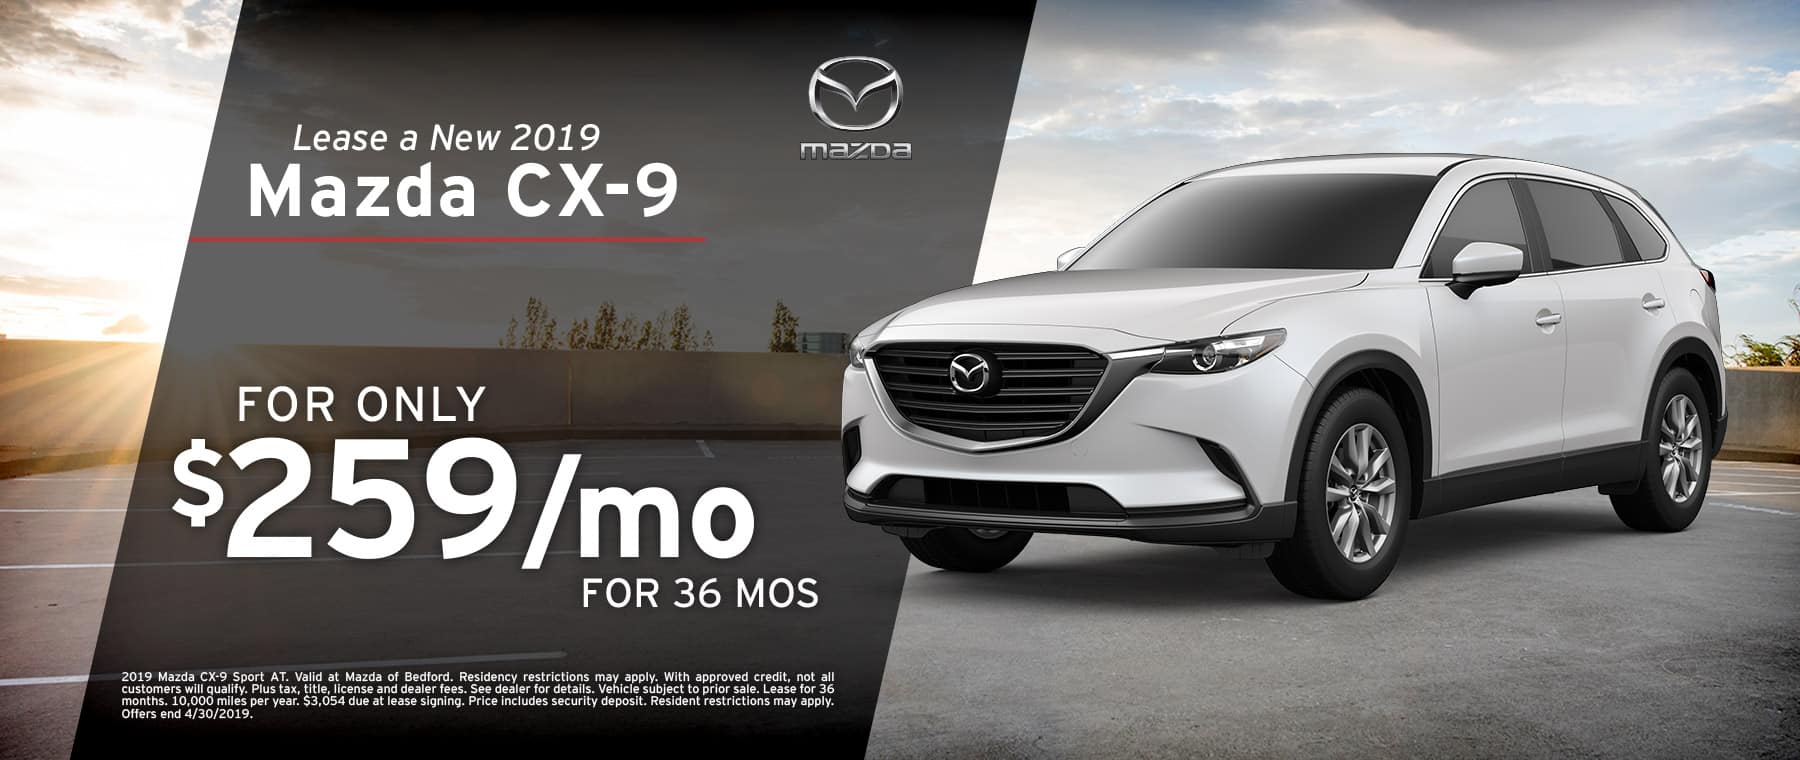 Save when you lease a 2019 Mazda CX-9 at Mazda of Bedford